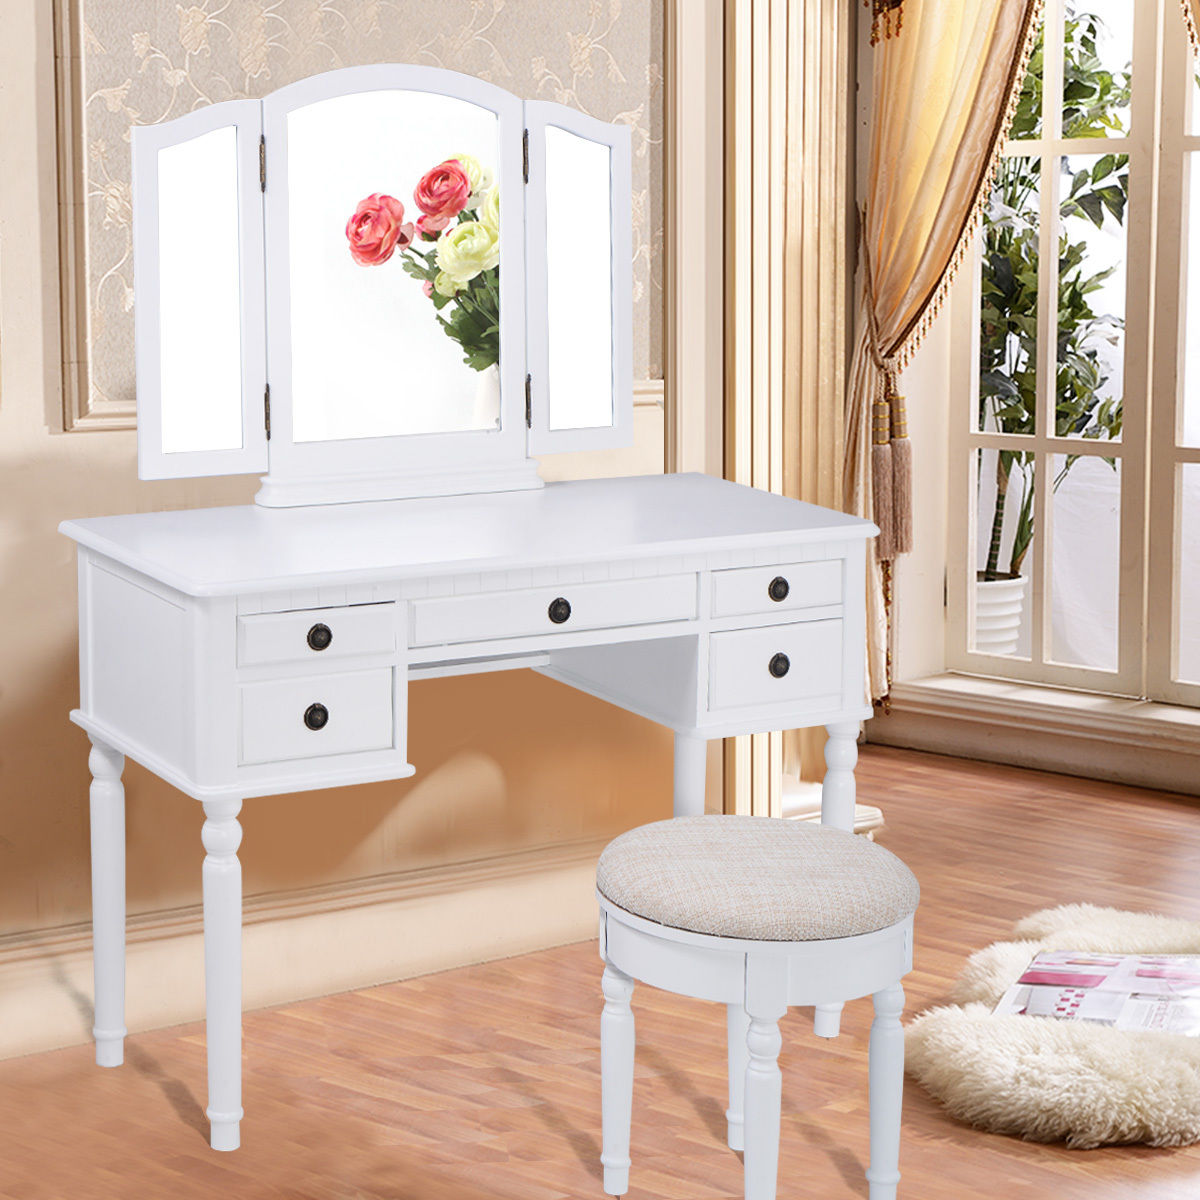 Costway 43''x19''x56'' Tri Folding Mirror Wood Luxury Vanity Makeup Set W 5 Drawer White by Costway